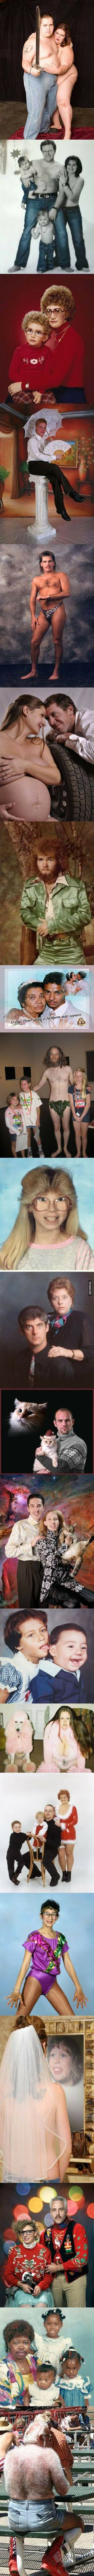 Most awkward family photo I have ever seen... Too much.